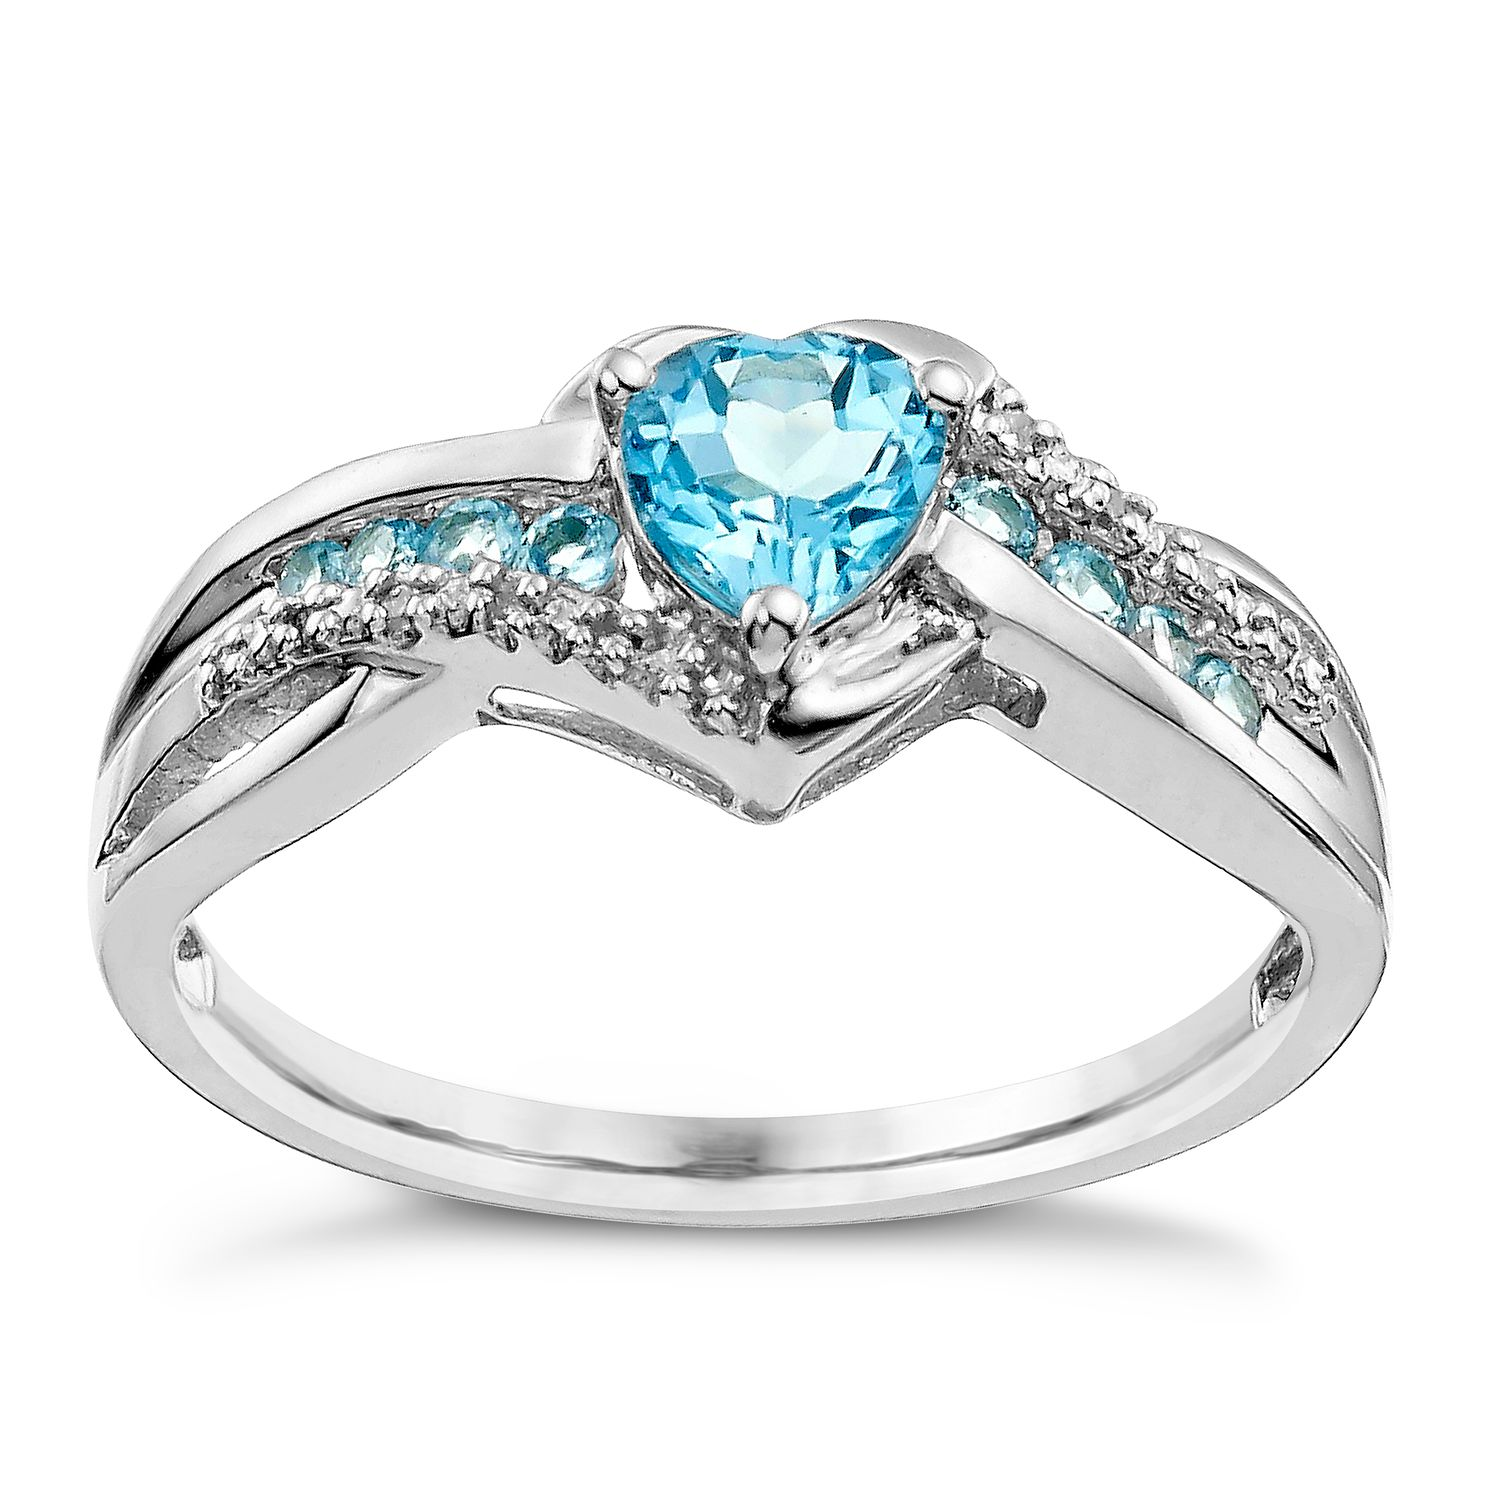 il rings gold cut kqel prongs claw available engagement fullxfull stone white ring emerald halo topaz cushion diamonds blue